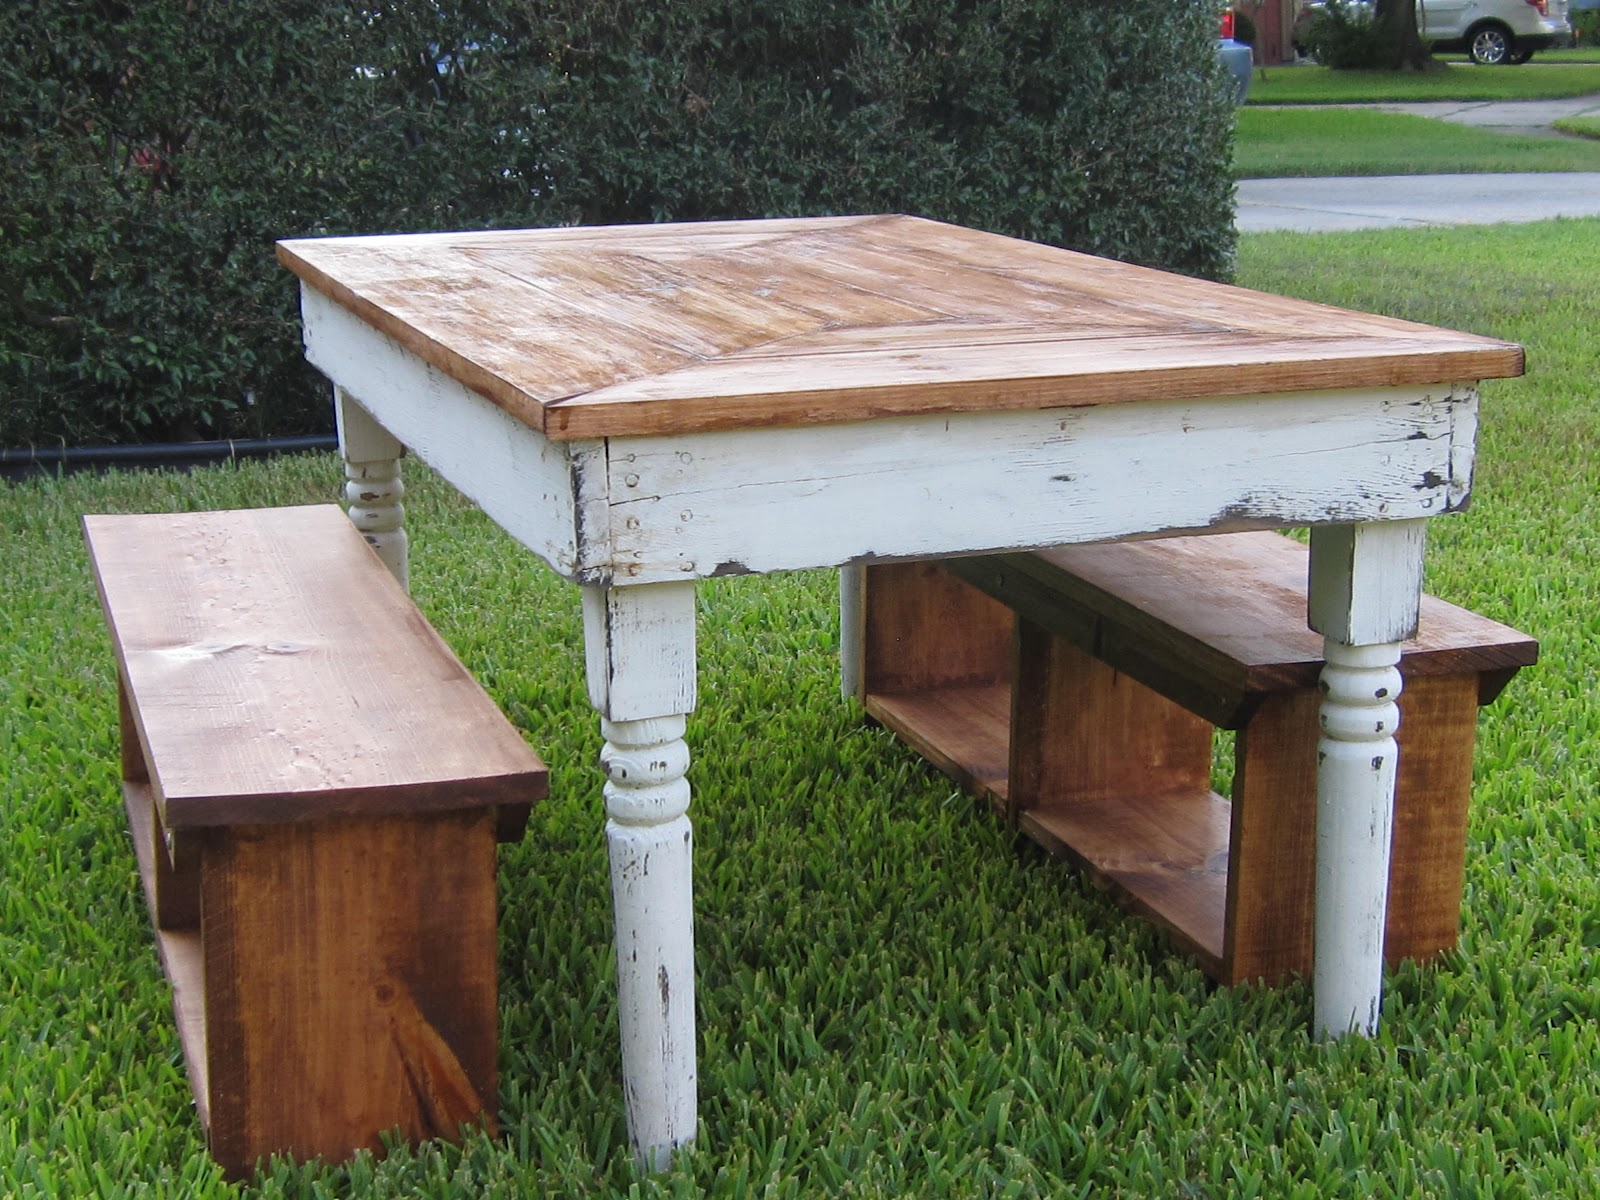 Remarkable Farm Table with Bench 1600 x 1200 · 403 kB · jpeg